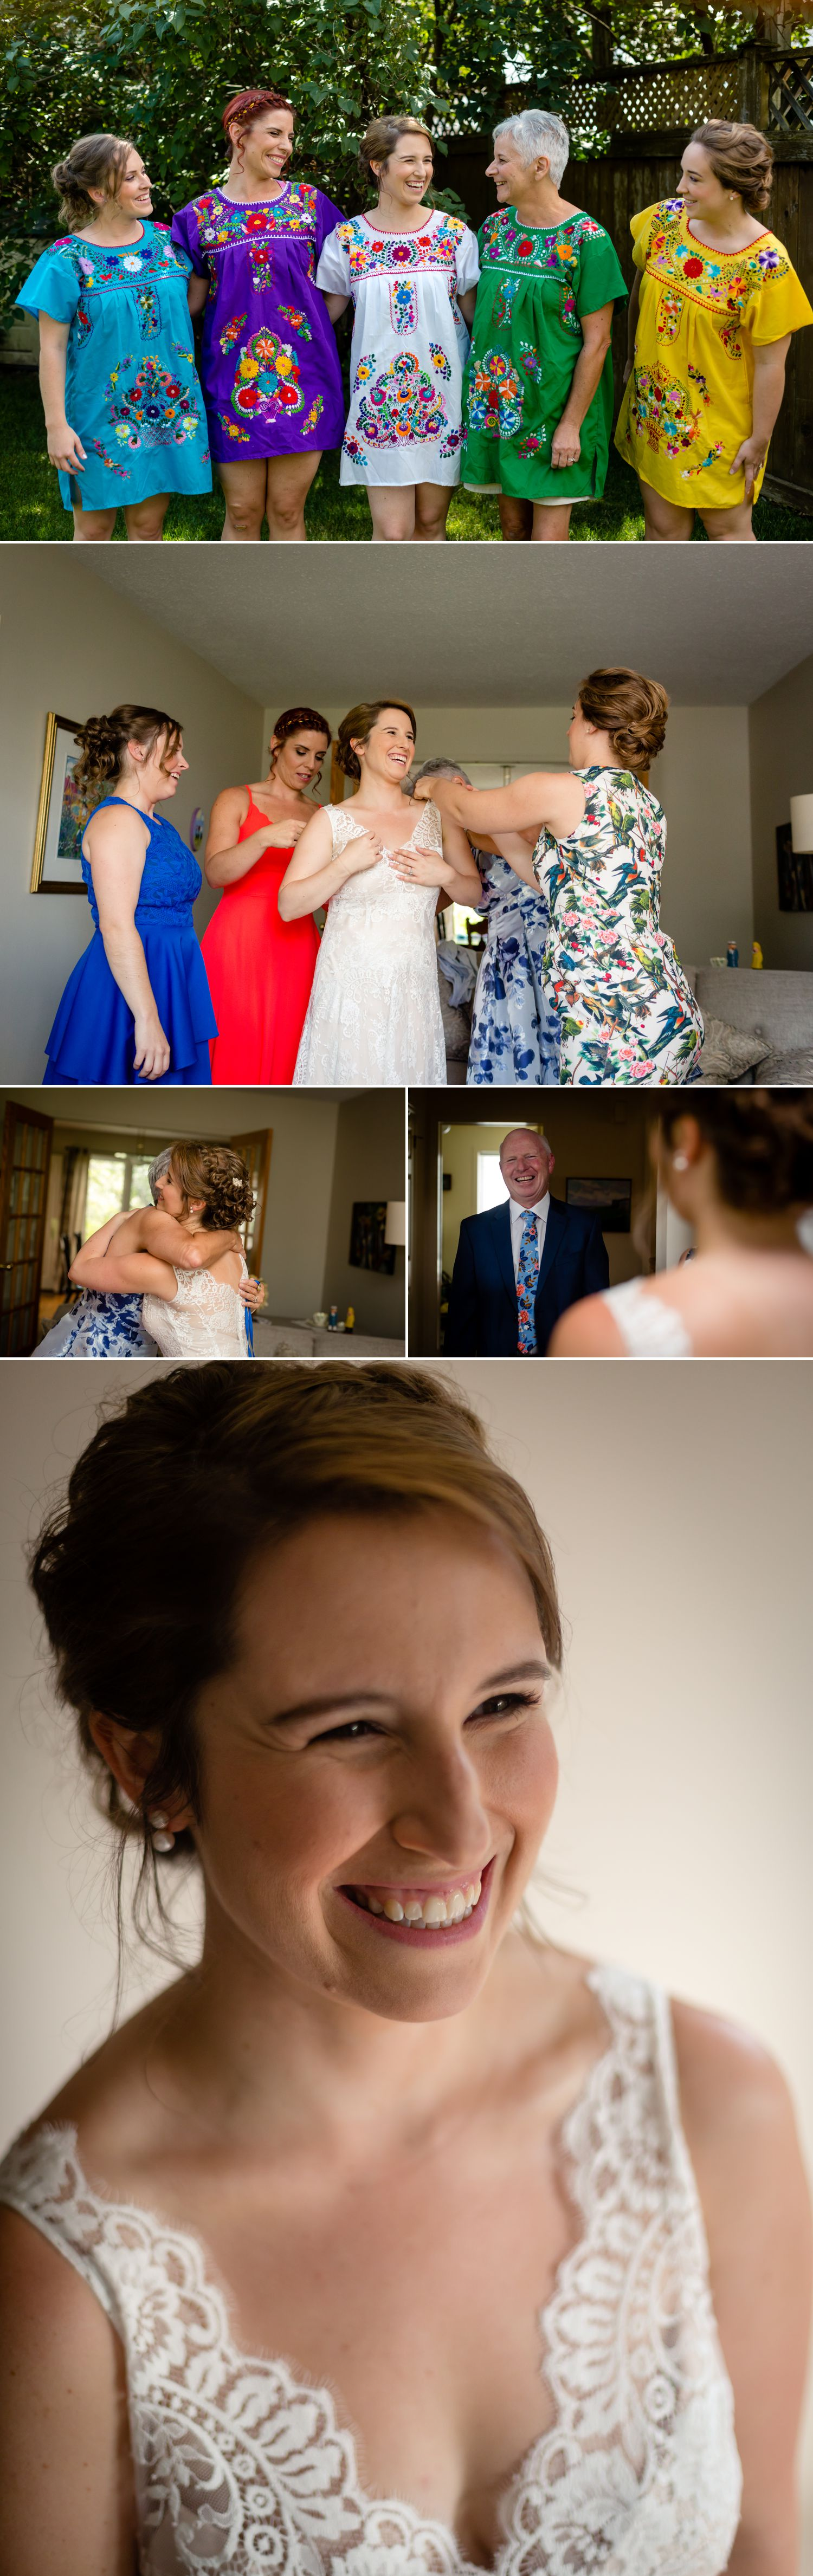 The bride with her bridesmaids and family getting ready at their home in Ottawa